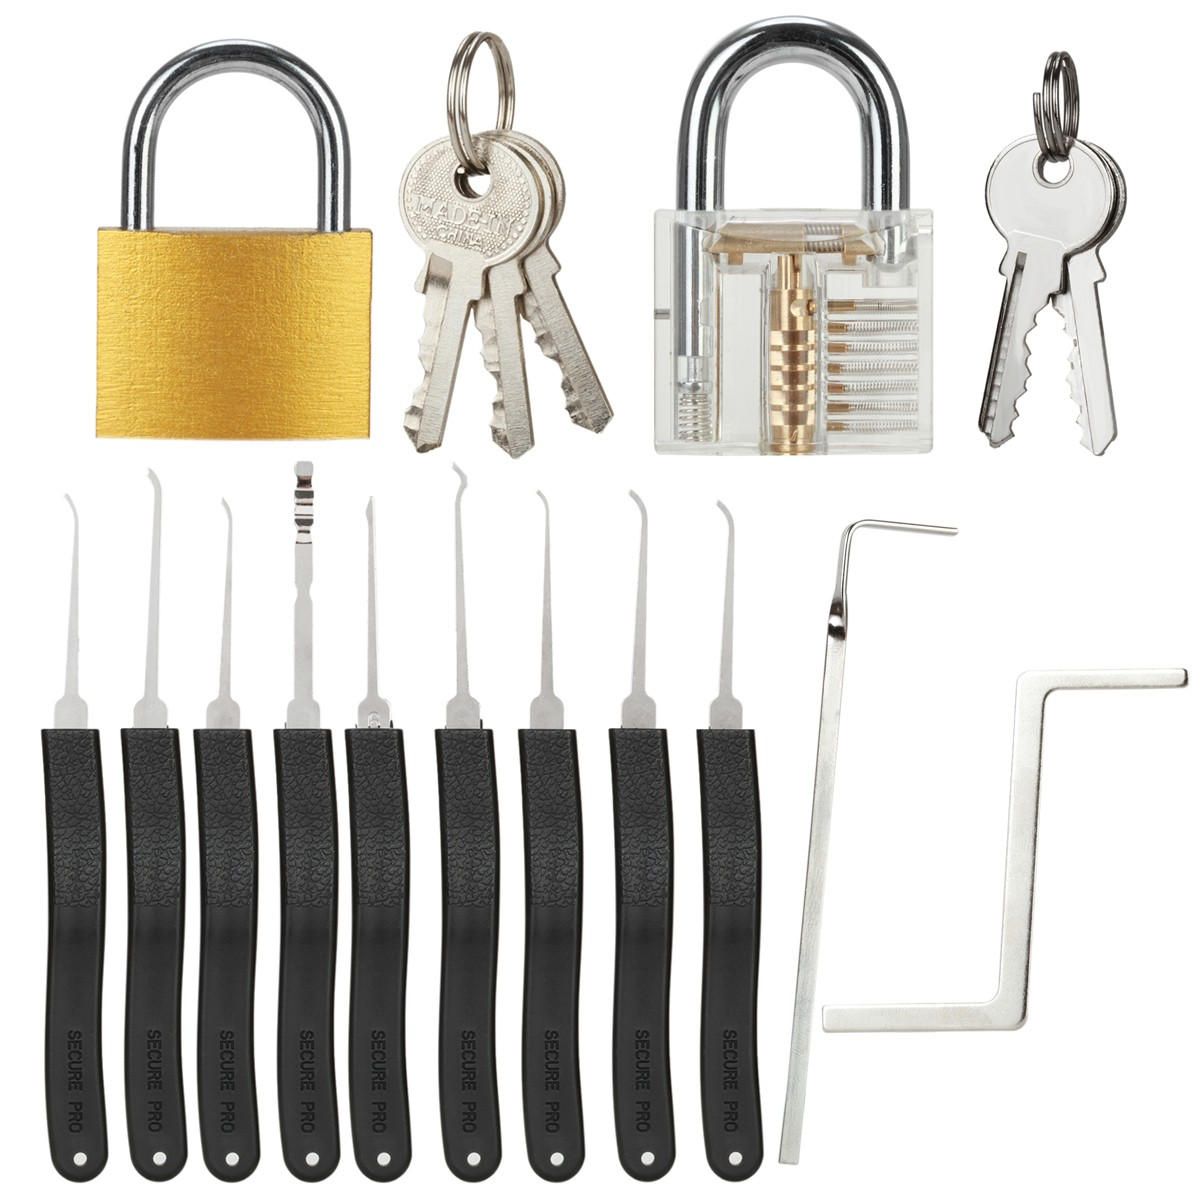 11 teiliges lockpicking set transparentes vorh ngeschloss werkzeuge kaufen. Black Bedroom Furniture Sets. Home Design Ideas